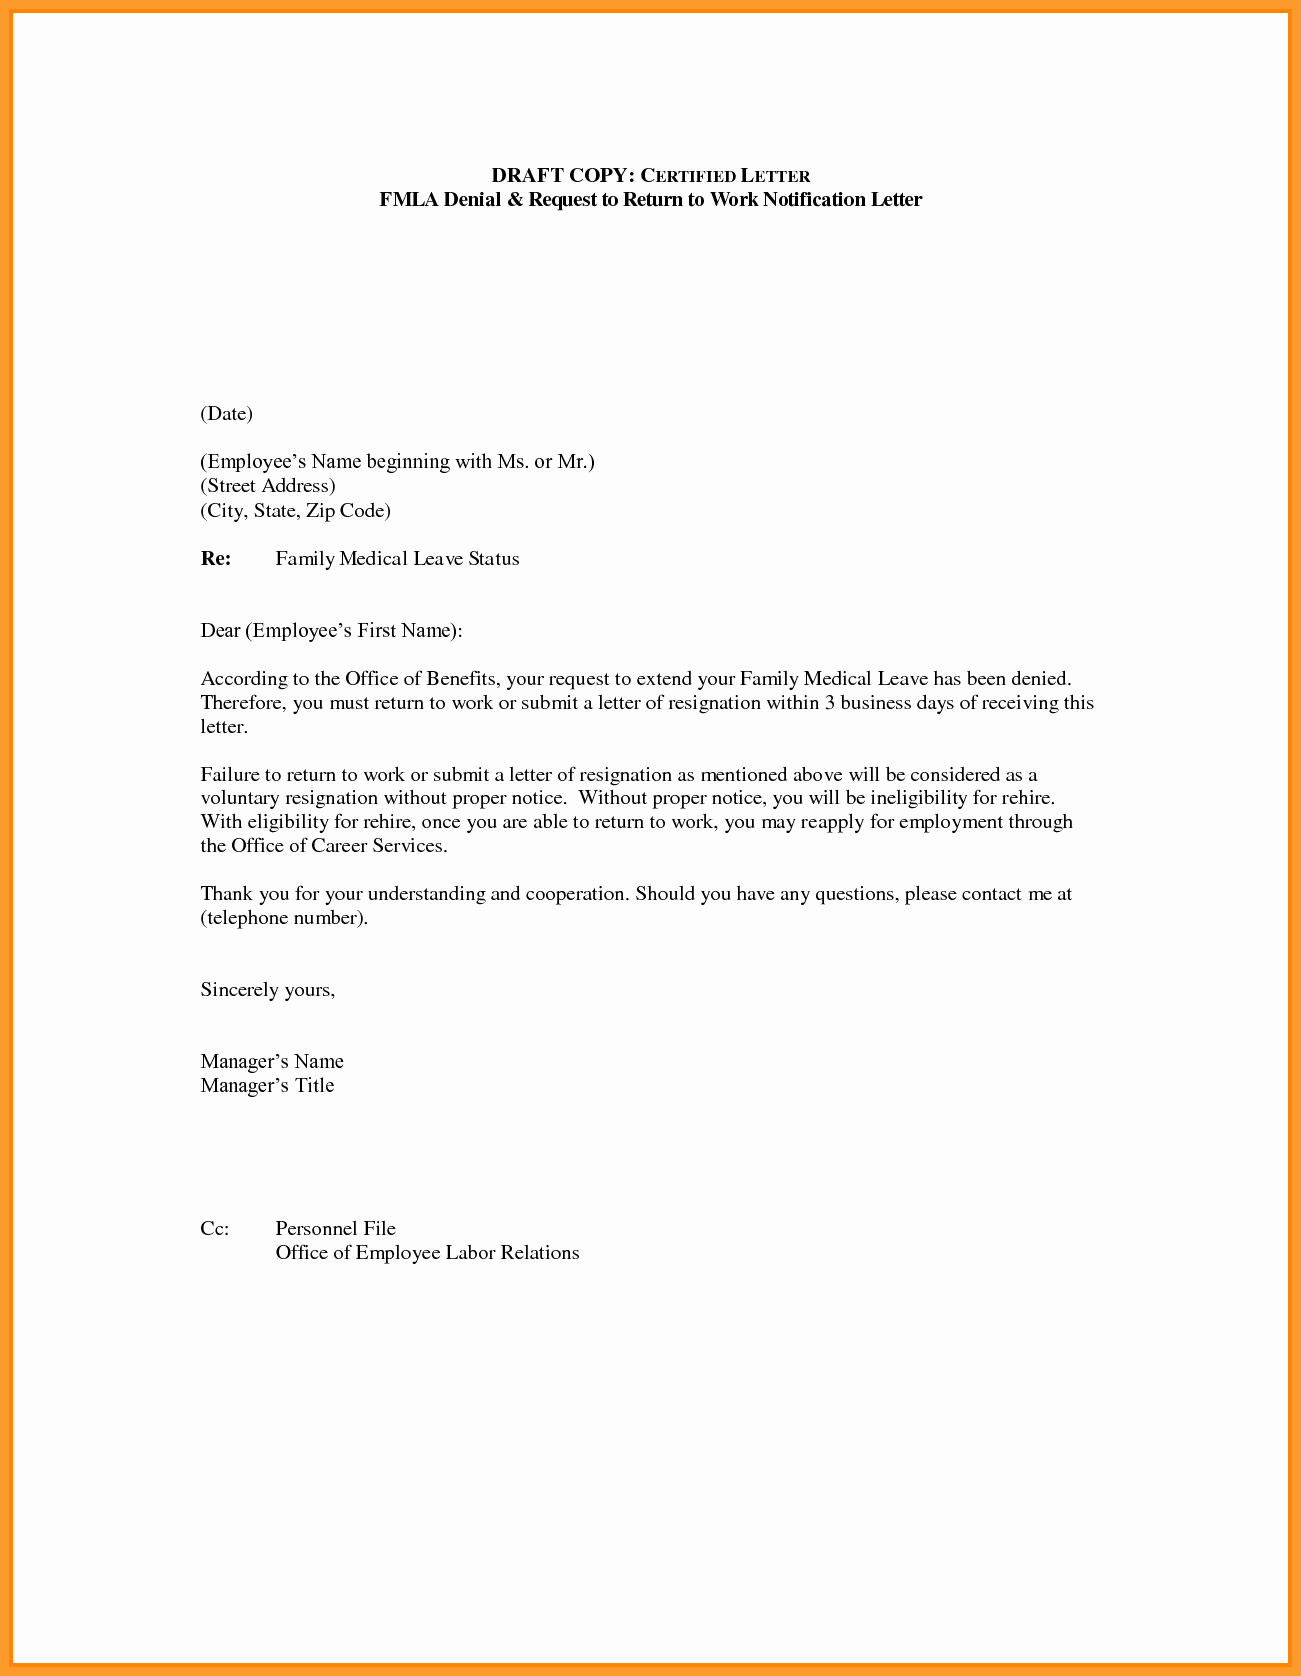 Return to Work Note Template Best Of Doctor Letter for Workmple Return Work From Business